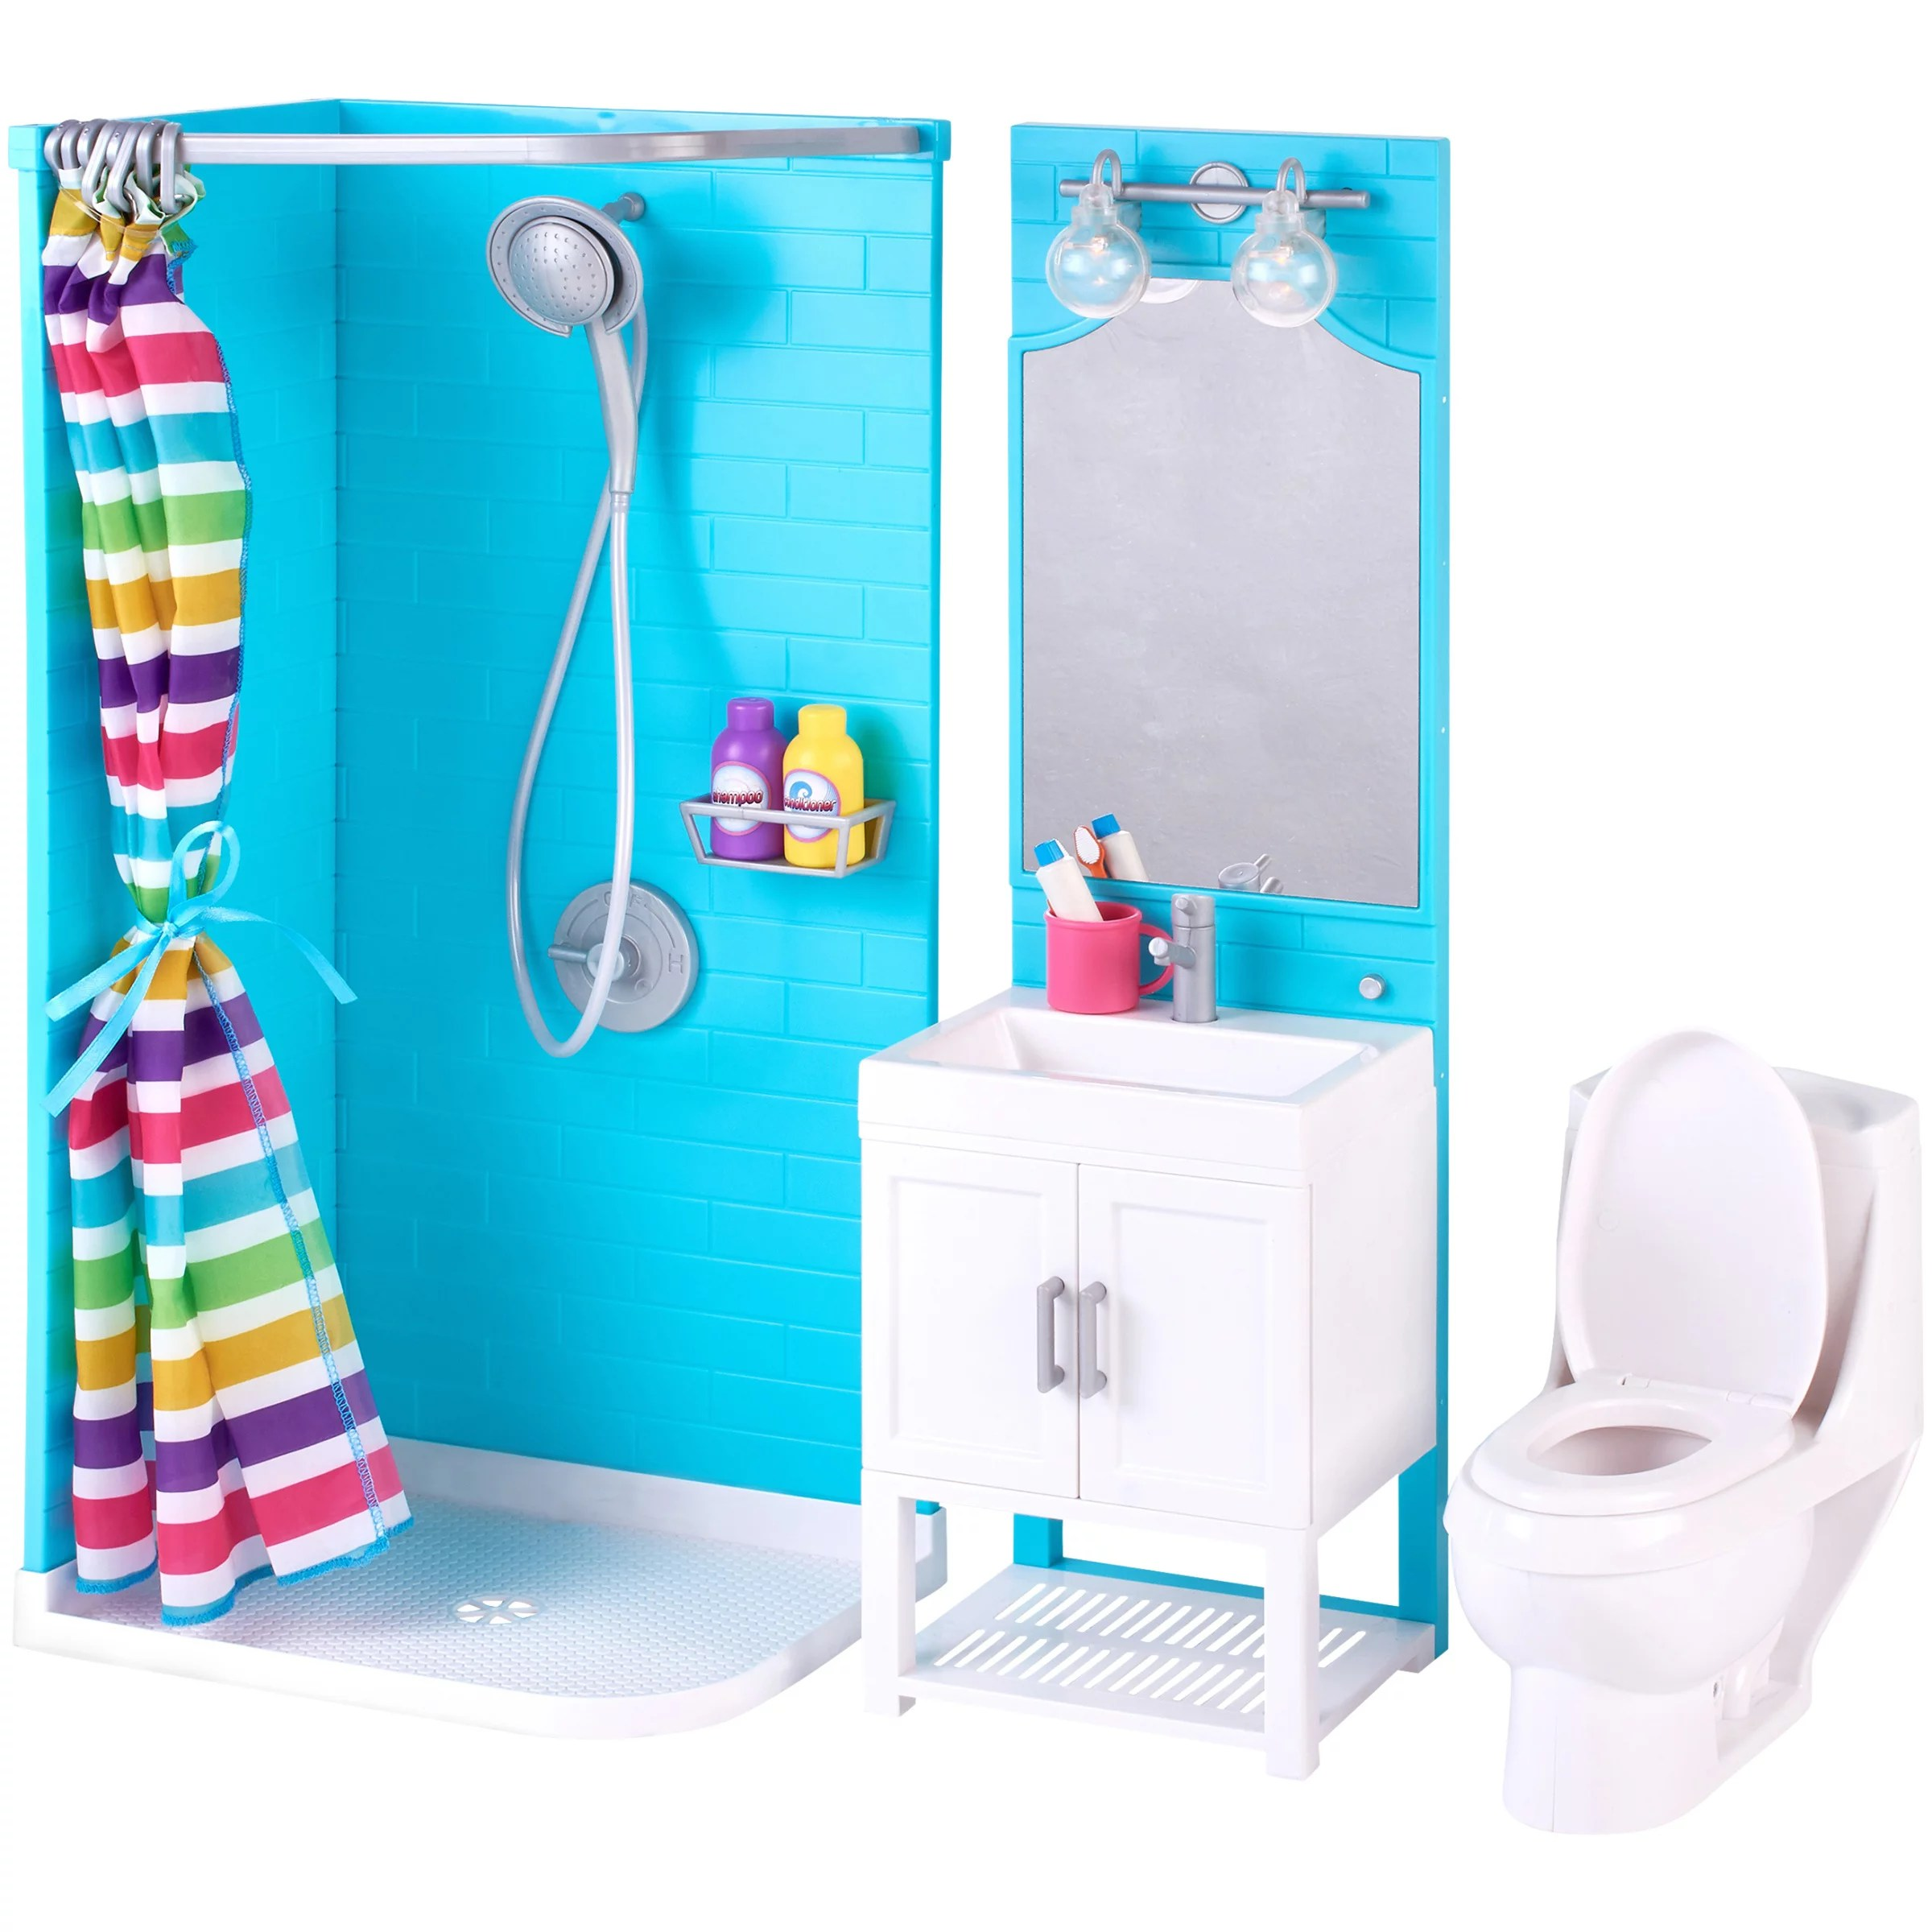 Pretty Bathroom Sets My Life As 17 Piece Bathroom Play Set With Shower And Light Up Vanity